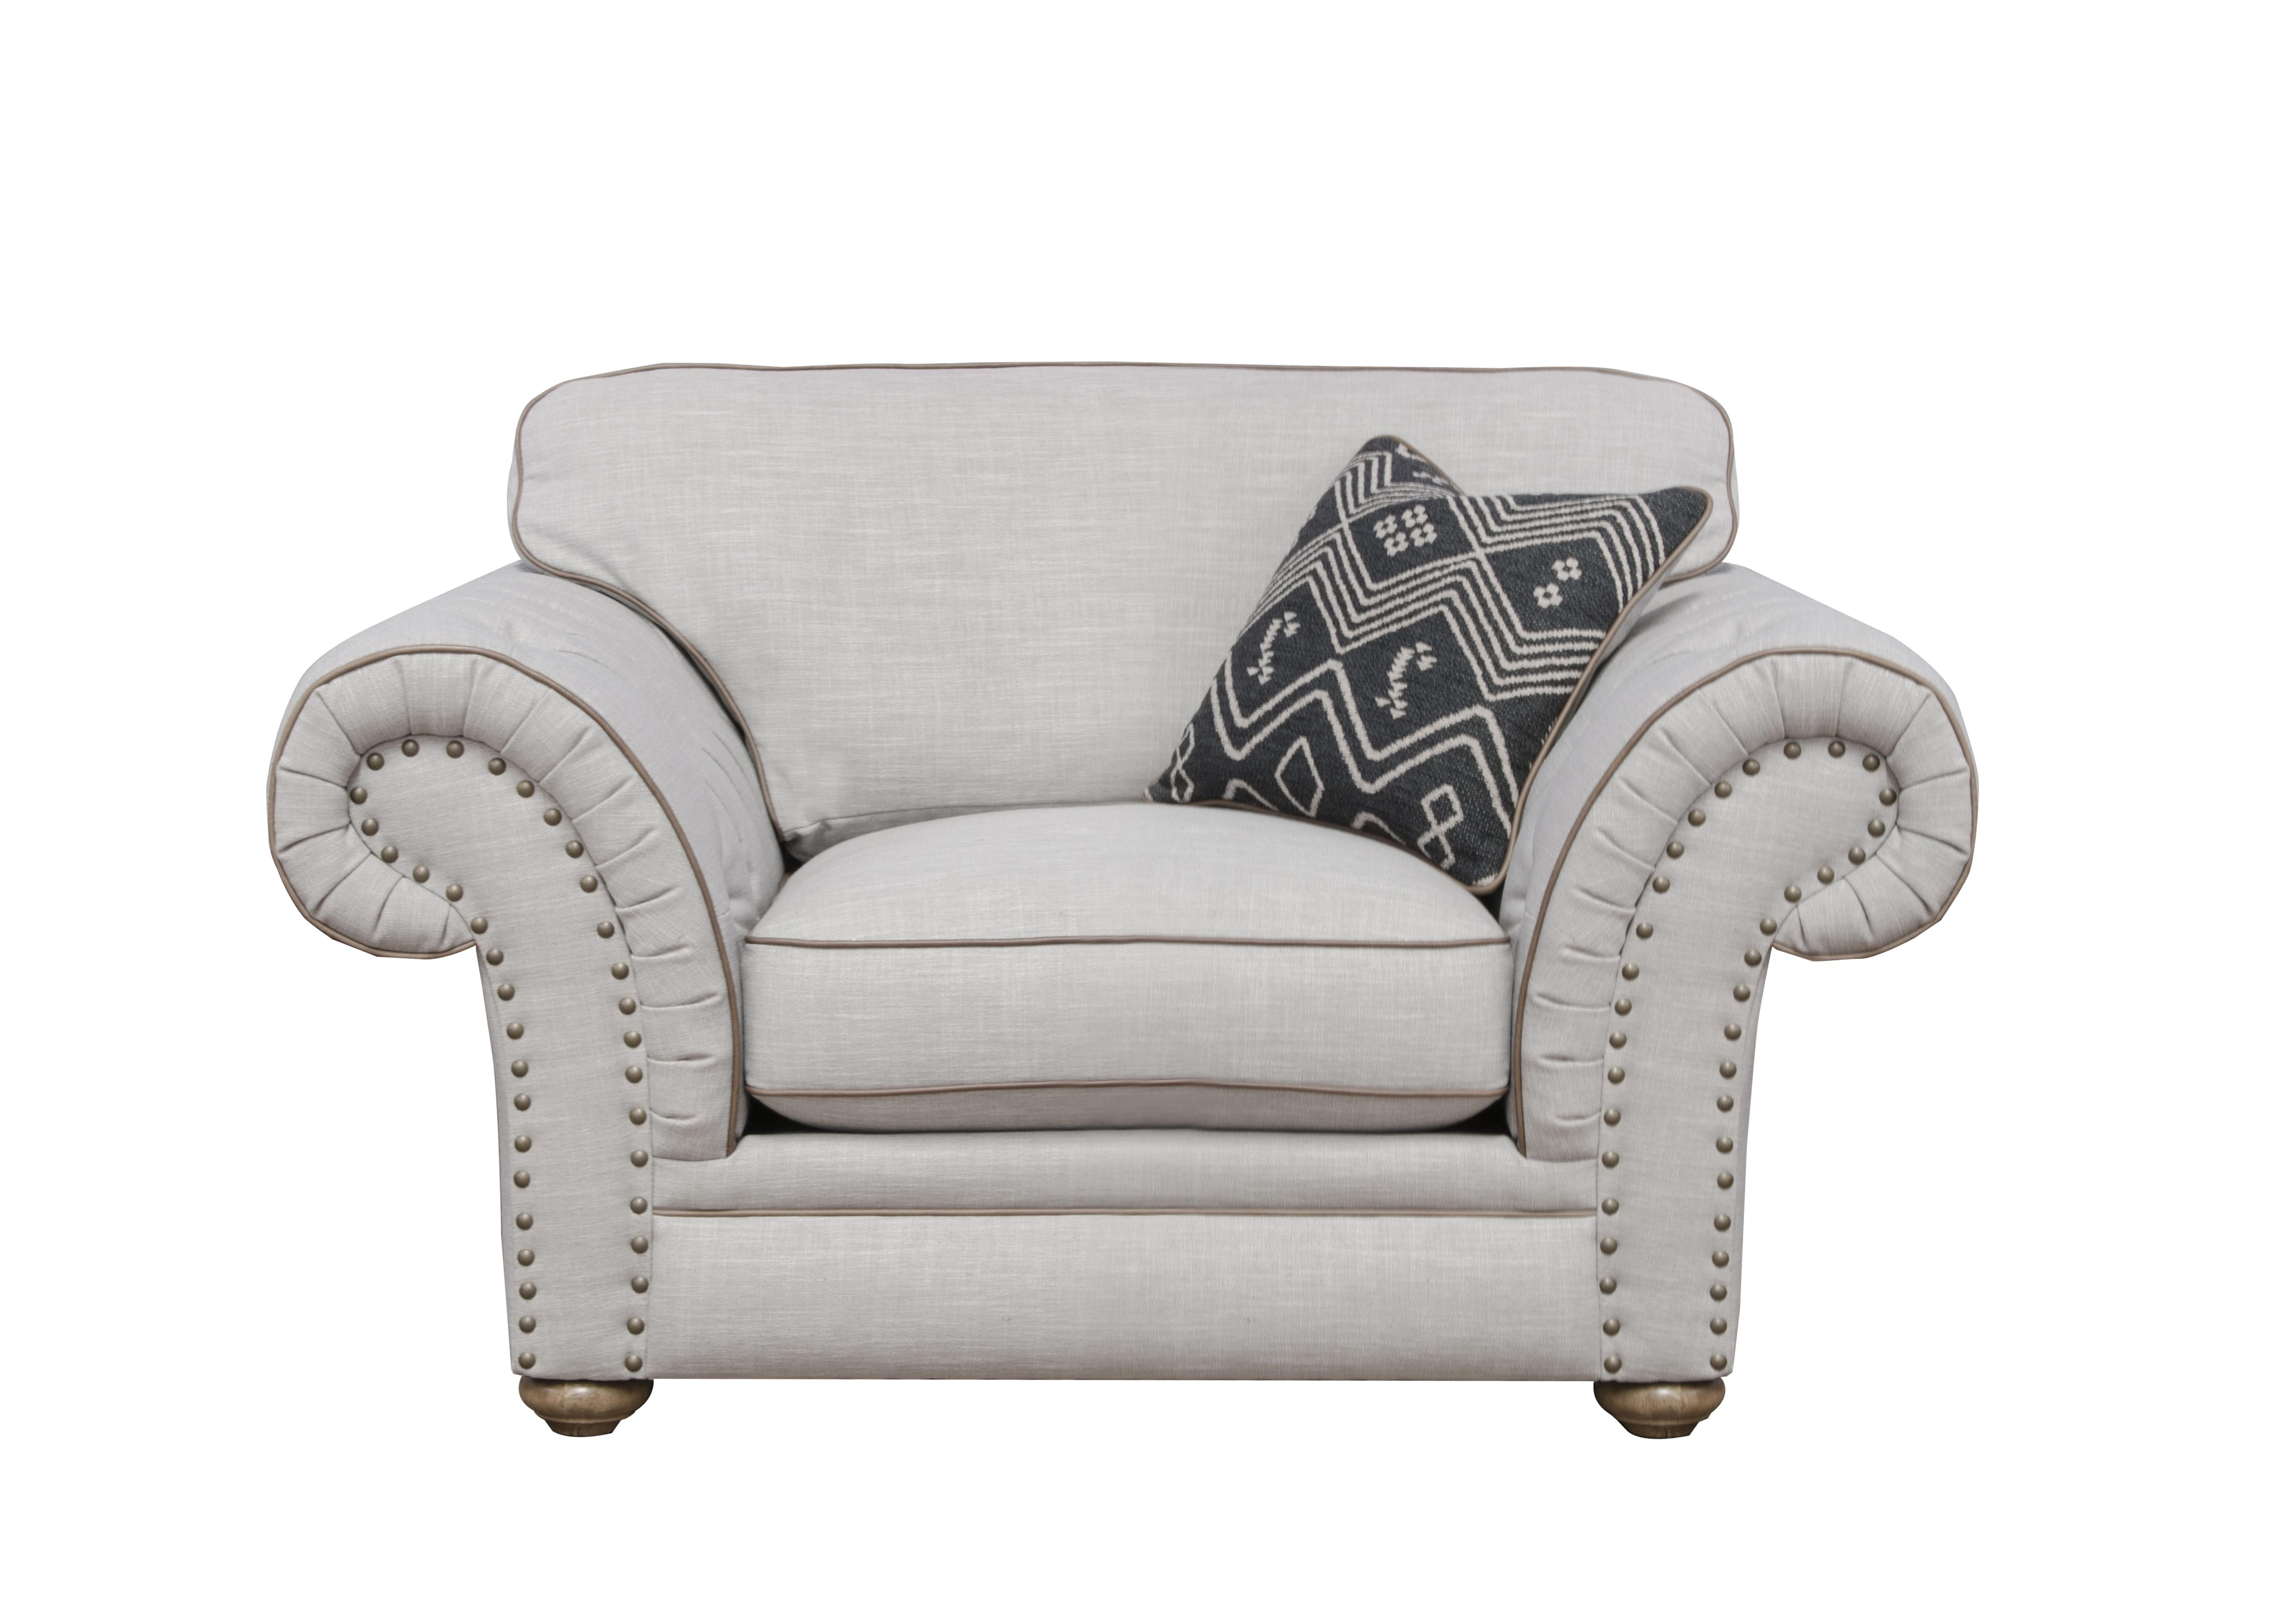 Furniture Village High Wycombe snuggle chair furniture village | outdoor furniture lounge chairs